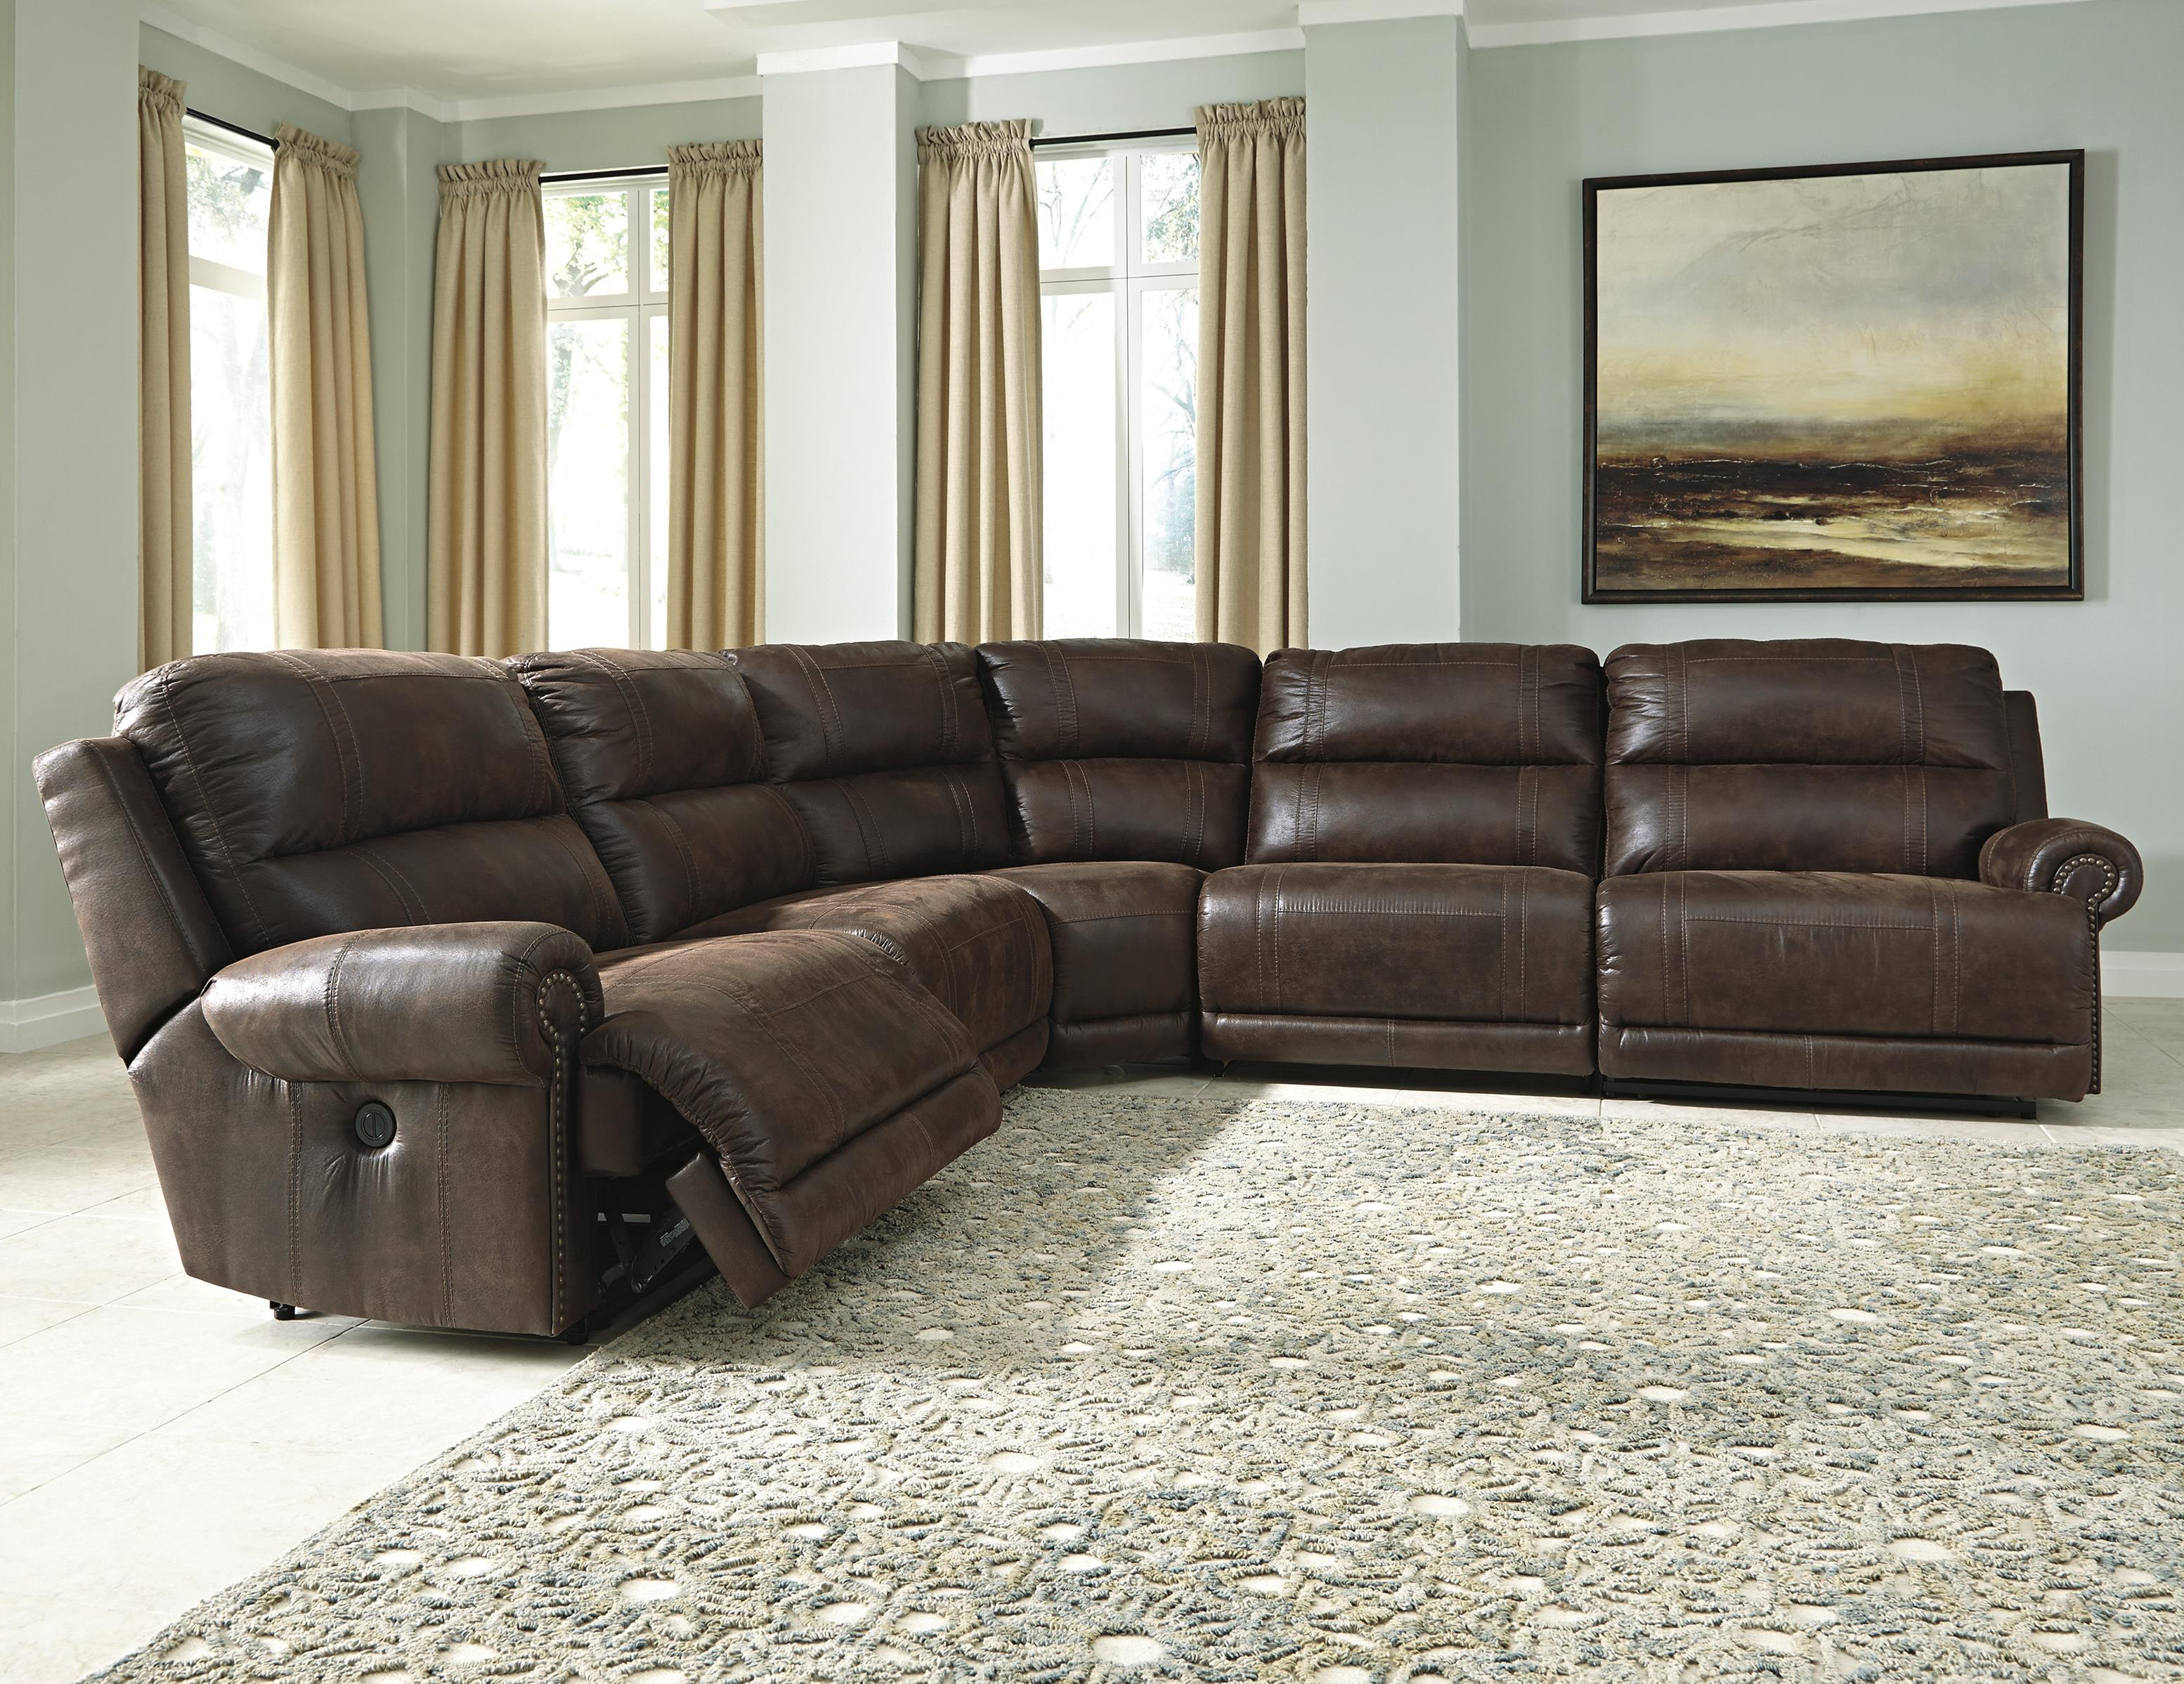 caruso leather 5 piece power motion sectional sofa retro nz ashley signature design luttrell faux